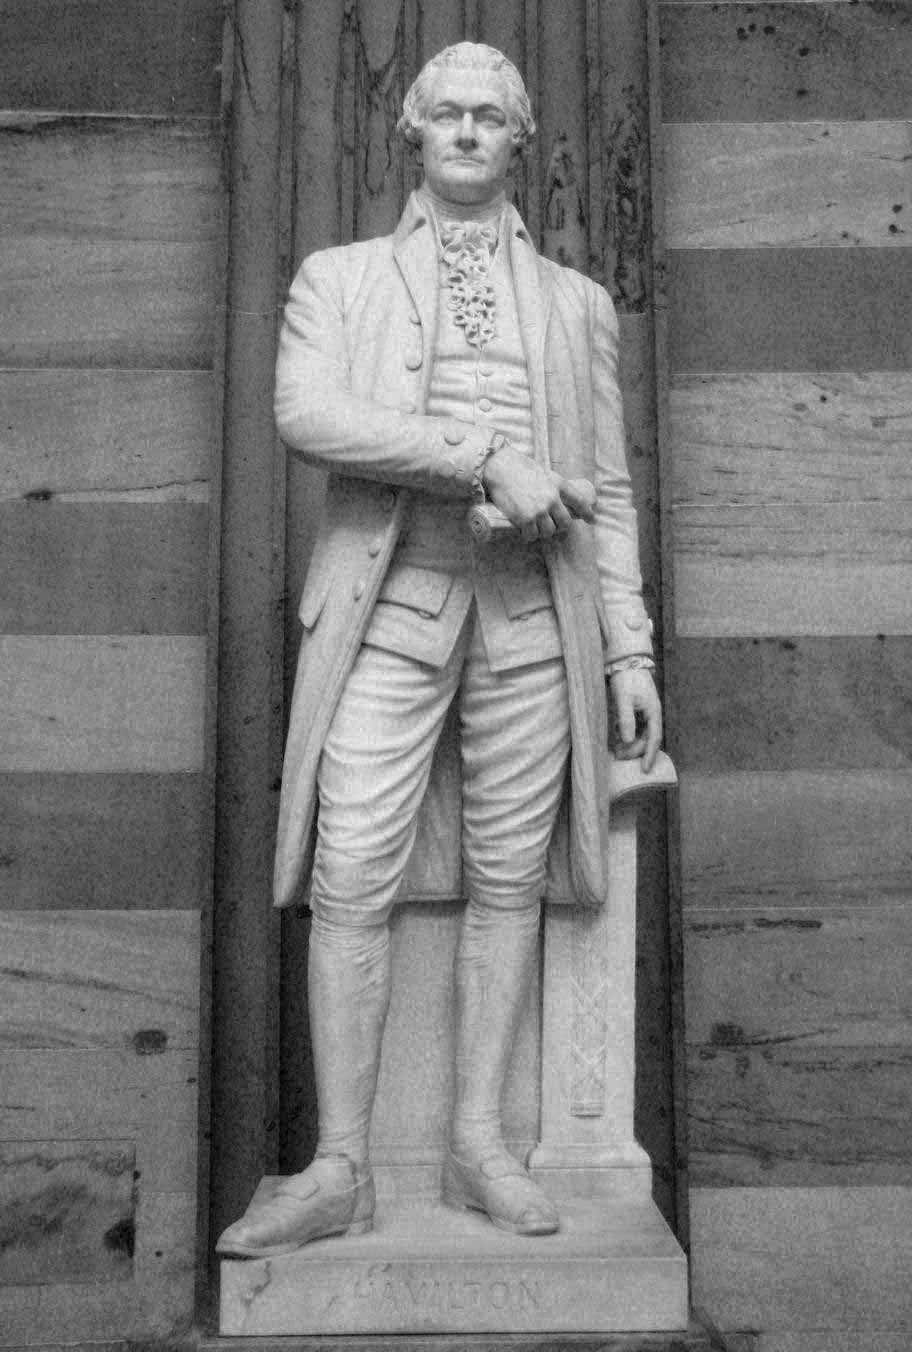 alexander hamilton triumph and tragedies In august 1772, a hurricane ravaged the west indies—and a young alexander hamilton picked up a pen to write about it the resulting letter would inspire the residents of the island where.